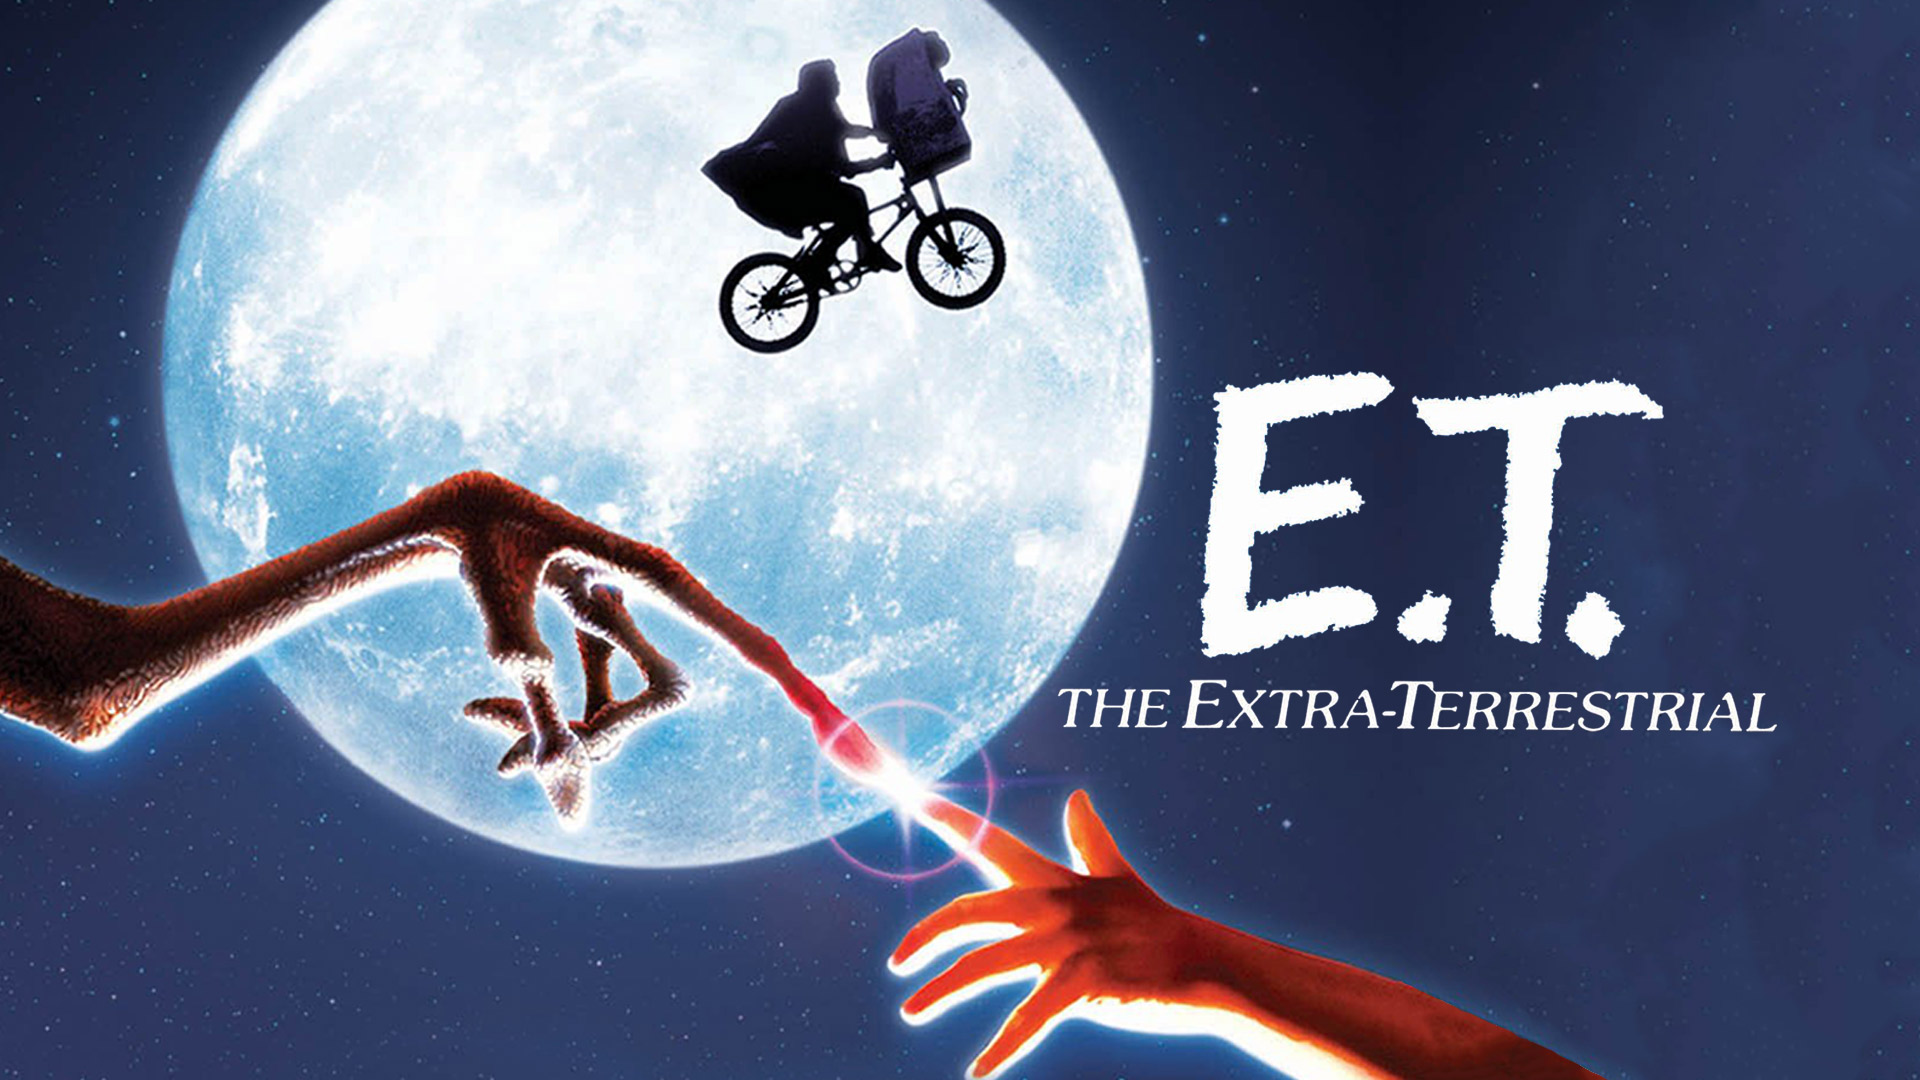 E.T.,The Extra-Terrestrial